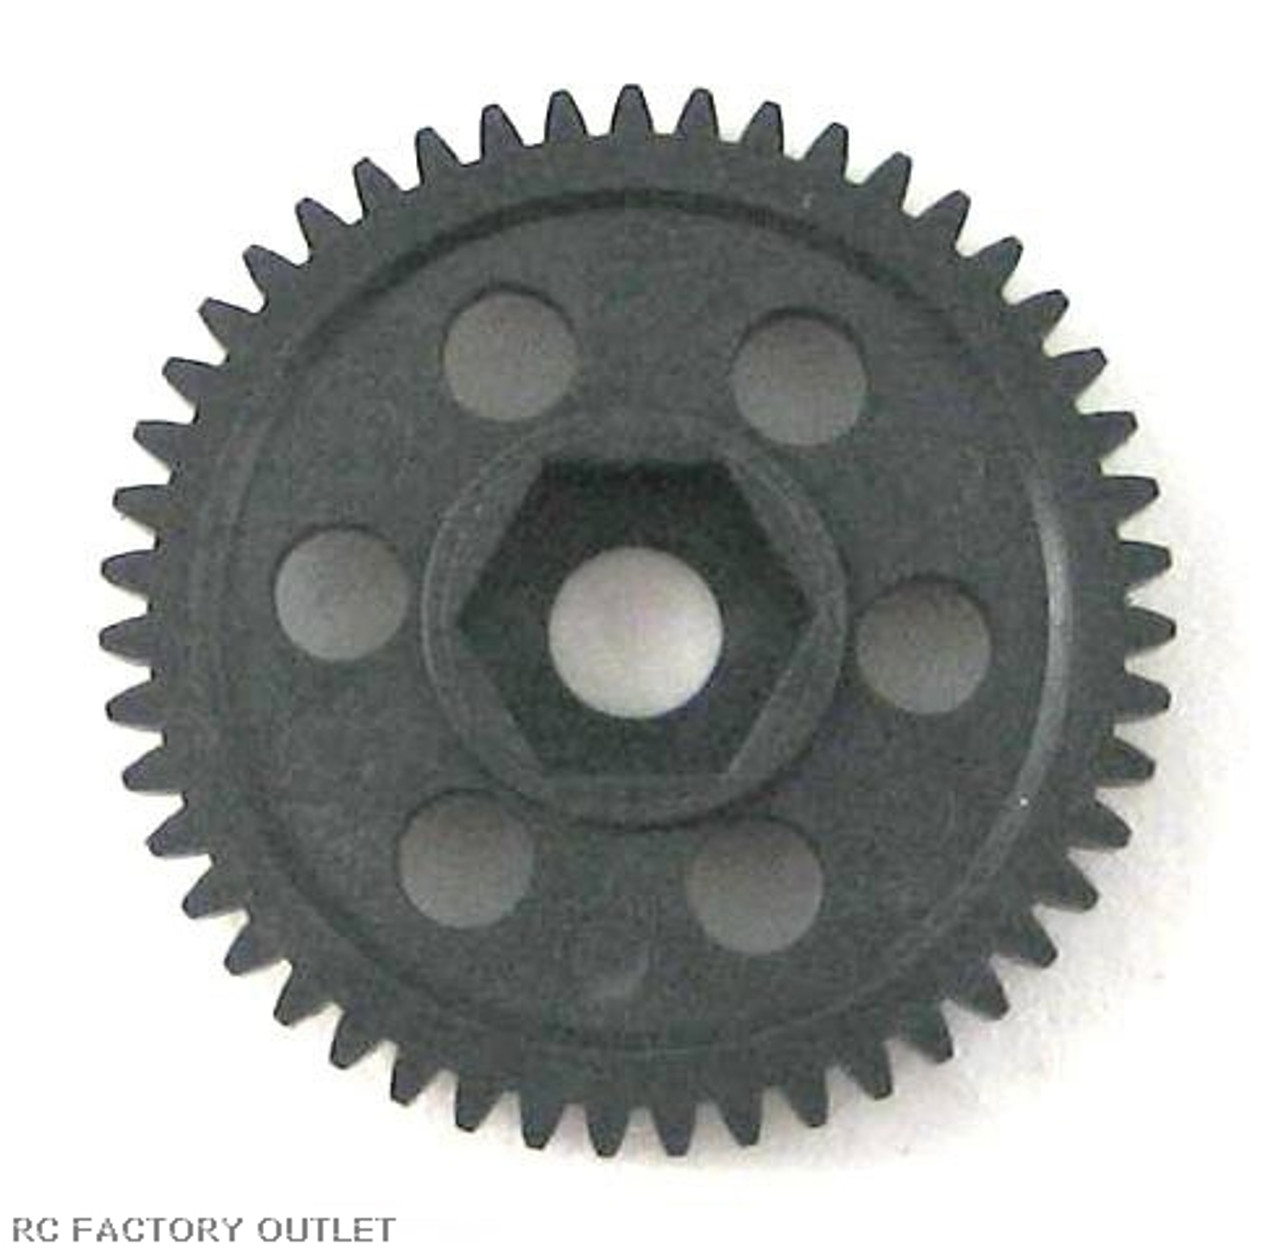 06232 or 06032 THROTTLE GEAR 47T HSP ATOMIC  HIMOTO ETC